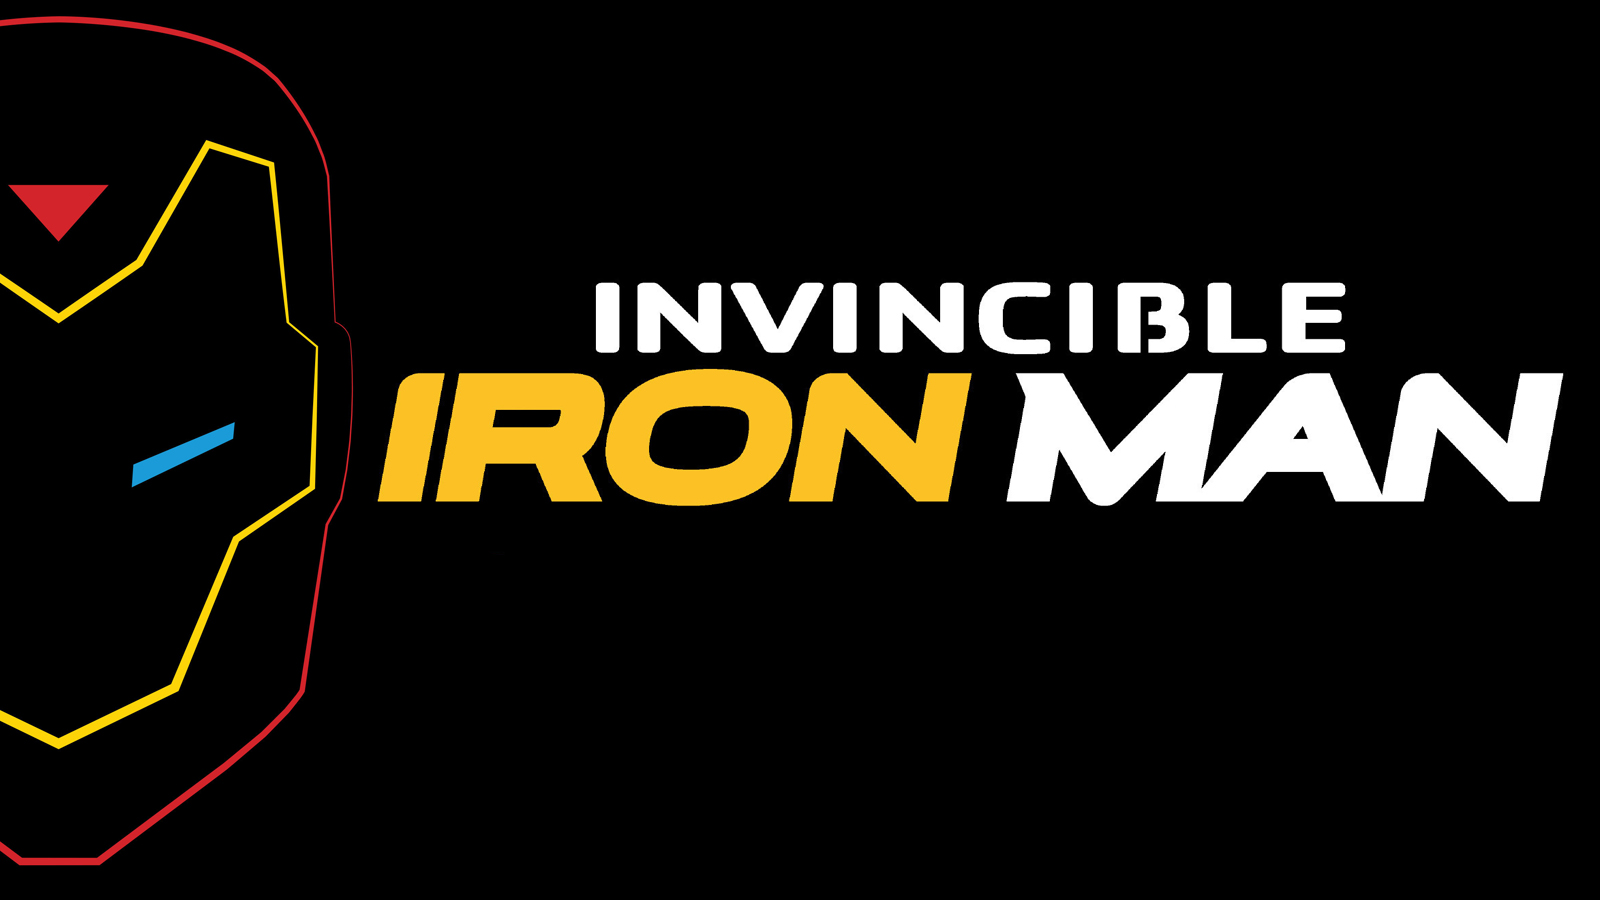 Iron Man Wallpaper 34447: Invincible Iron Man Wallpaper By Franky4FingersX2 On